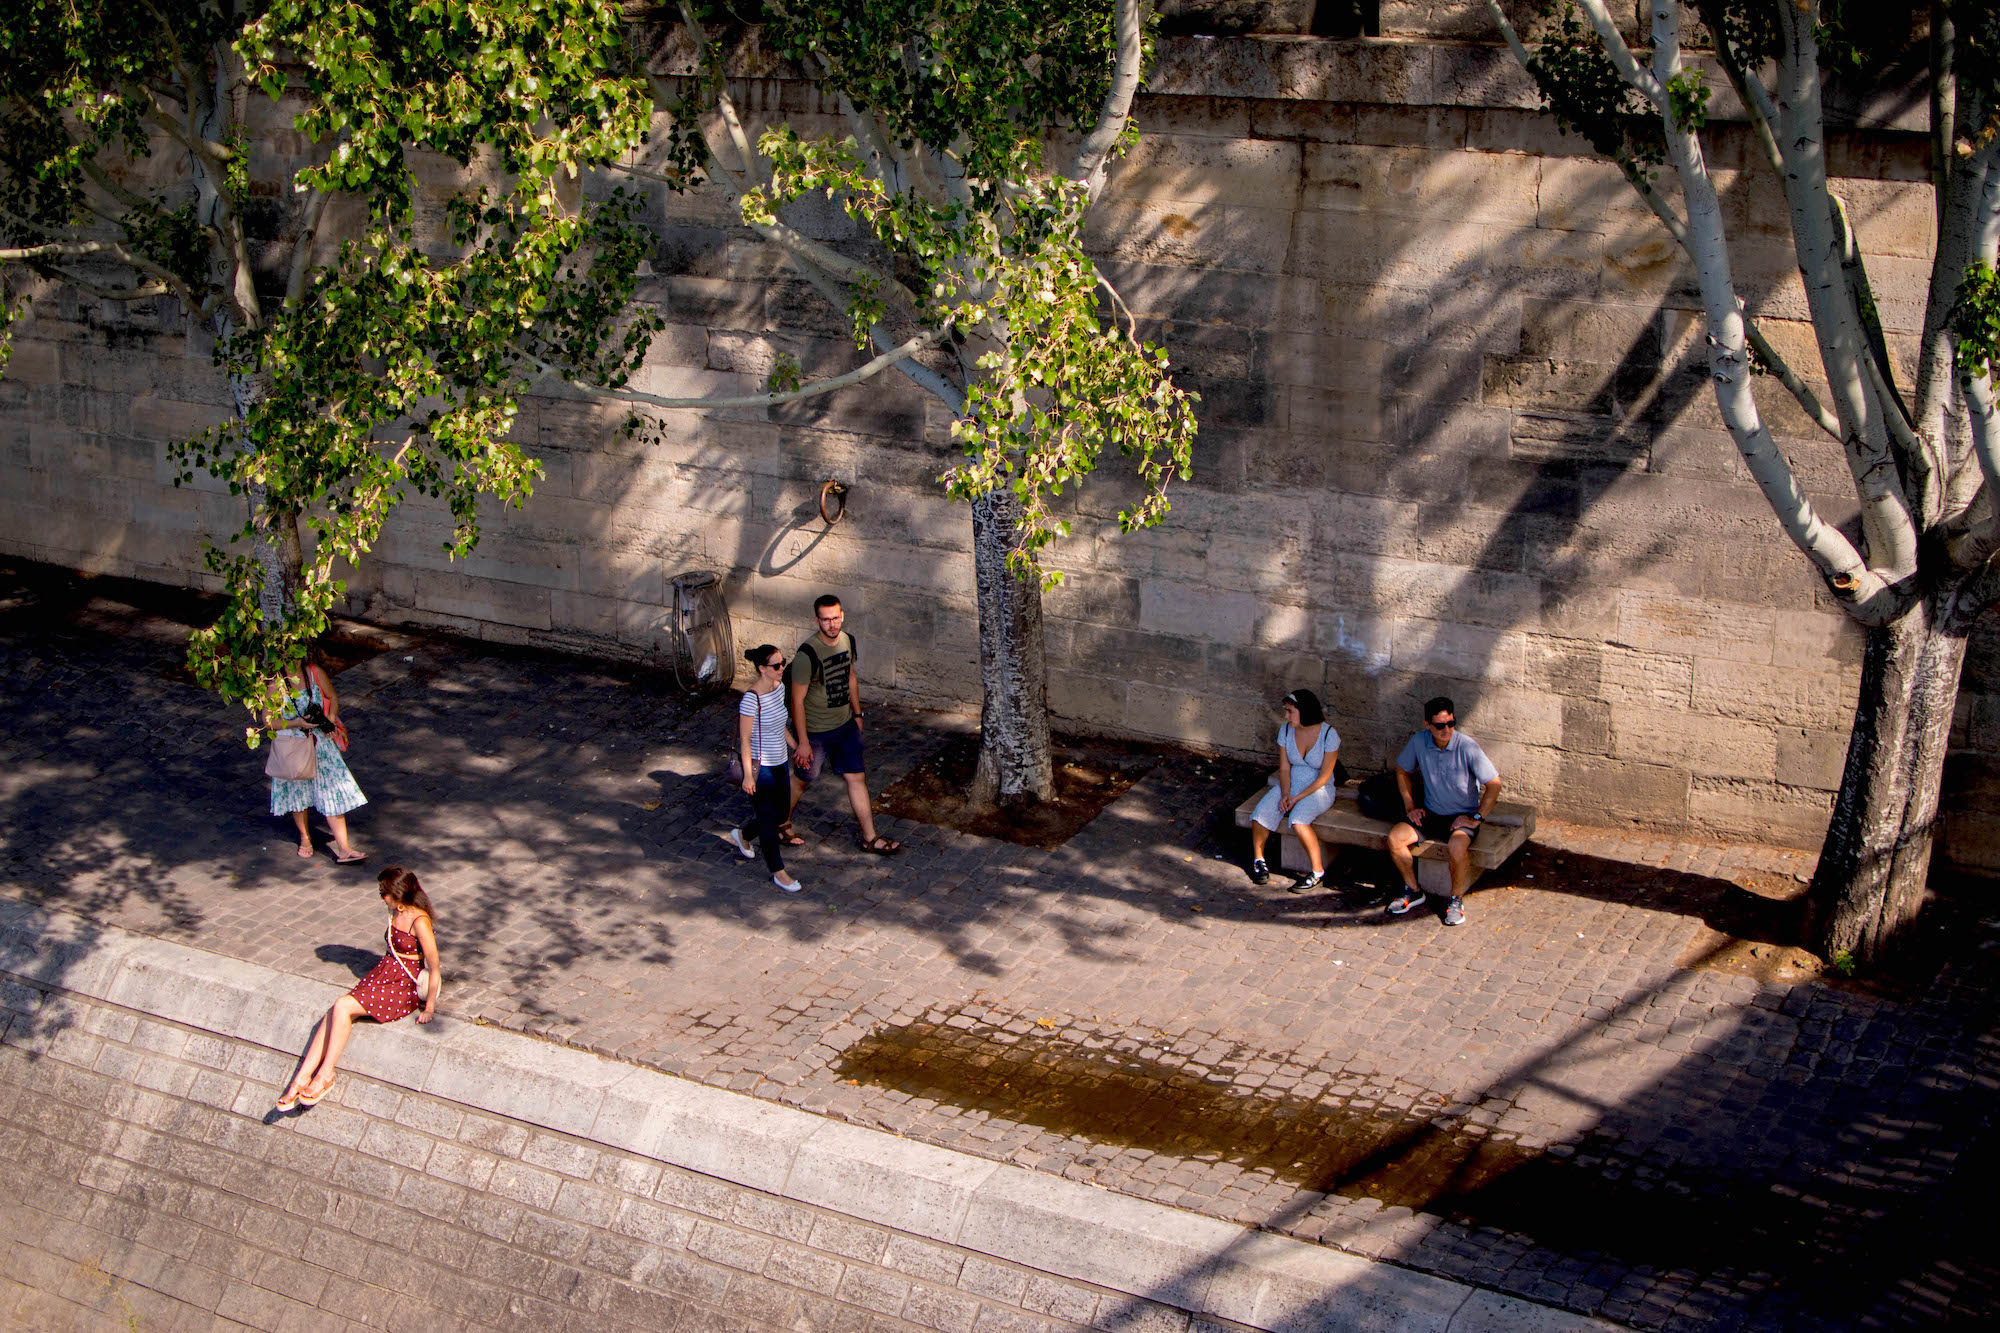 A handful of locals sitting on the banks of the River Seine in the shade of swaying trees in the summer.